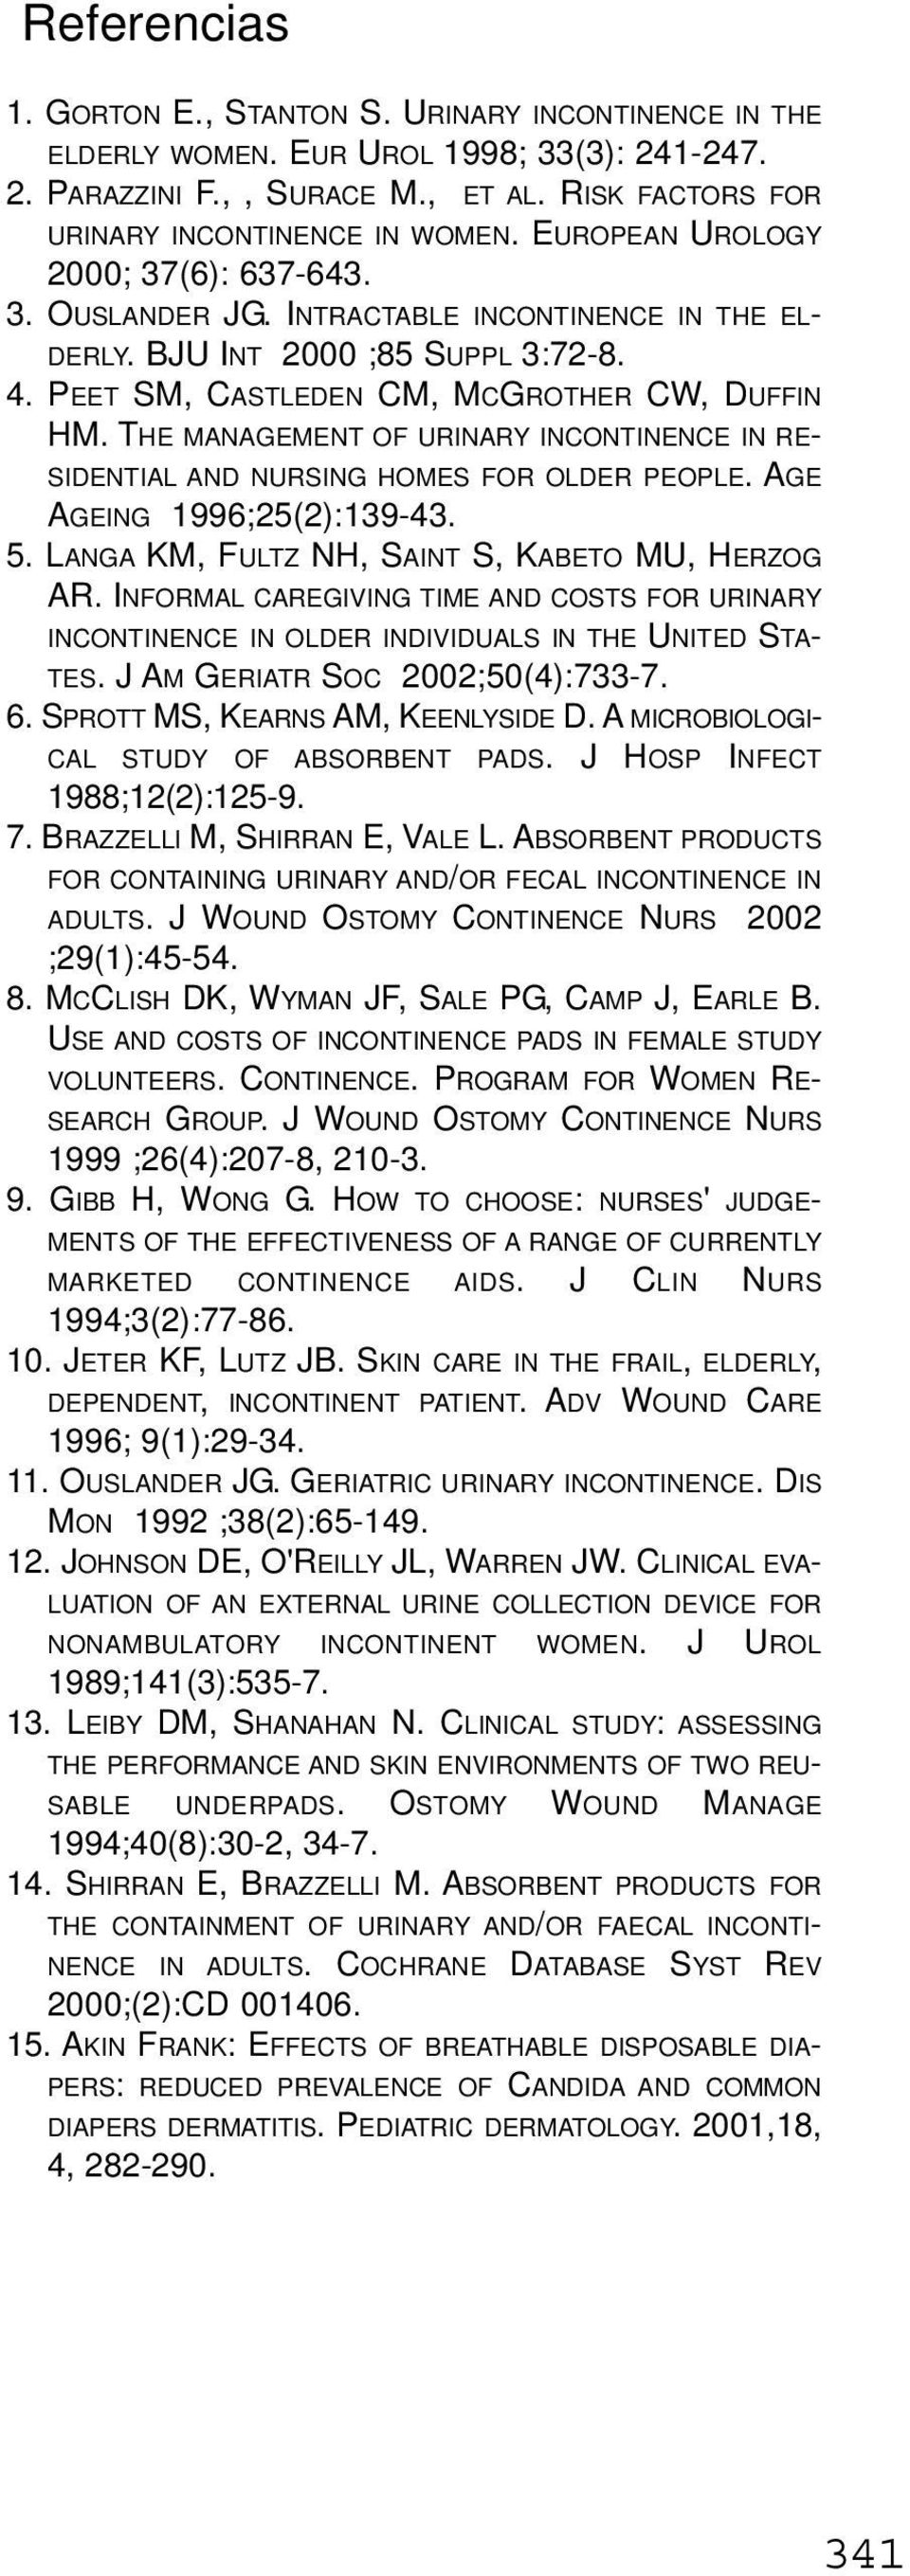 THE MANAGEMENT OF URINARY INCONTINENCE IN RE- SIDENTIAL AND NURSING HOMES FOR OLDER PEOPLE. AGE AGEING 1996;25(2):139-43. 5. LANGA KM, FULTZ NH, SAINT S, KABETO MU, HERZOG AR.